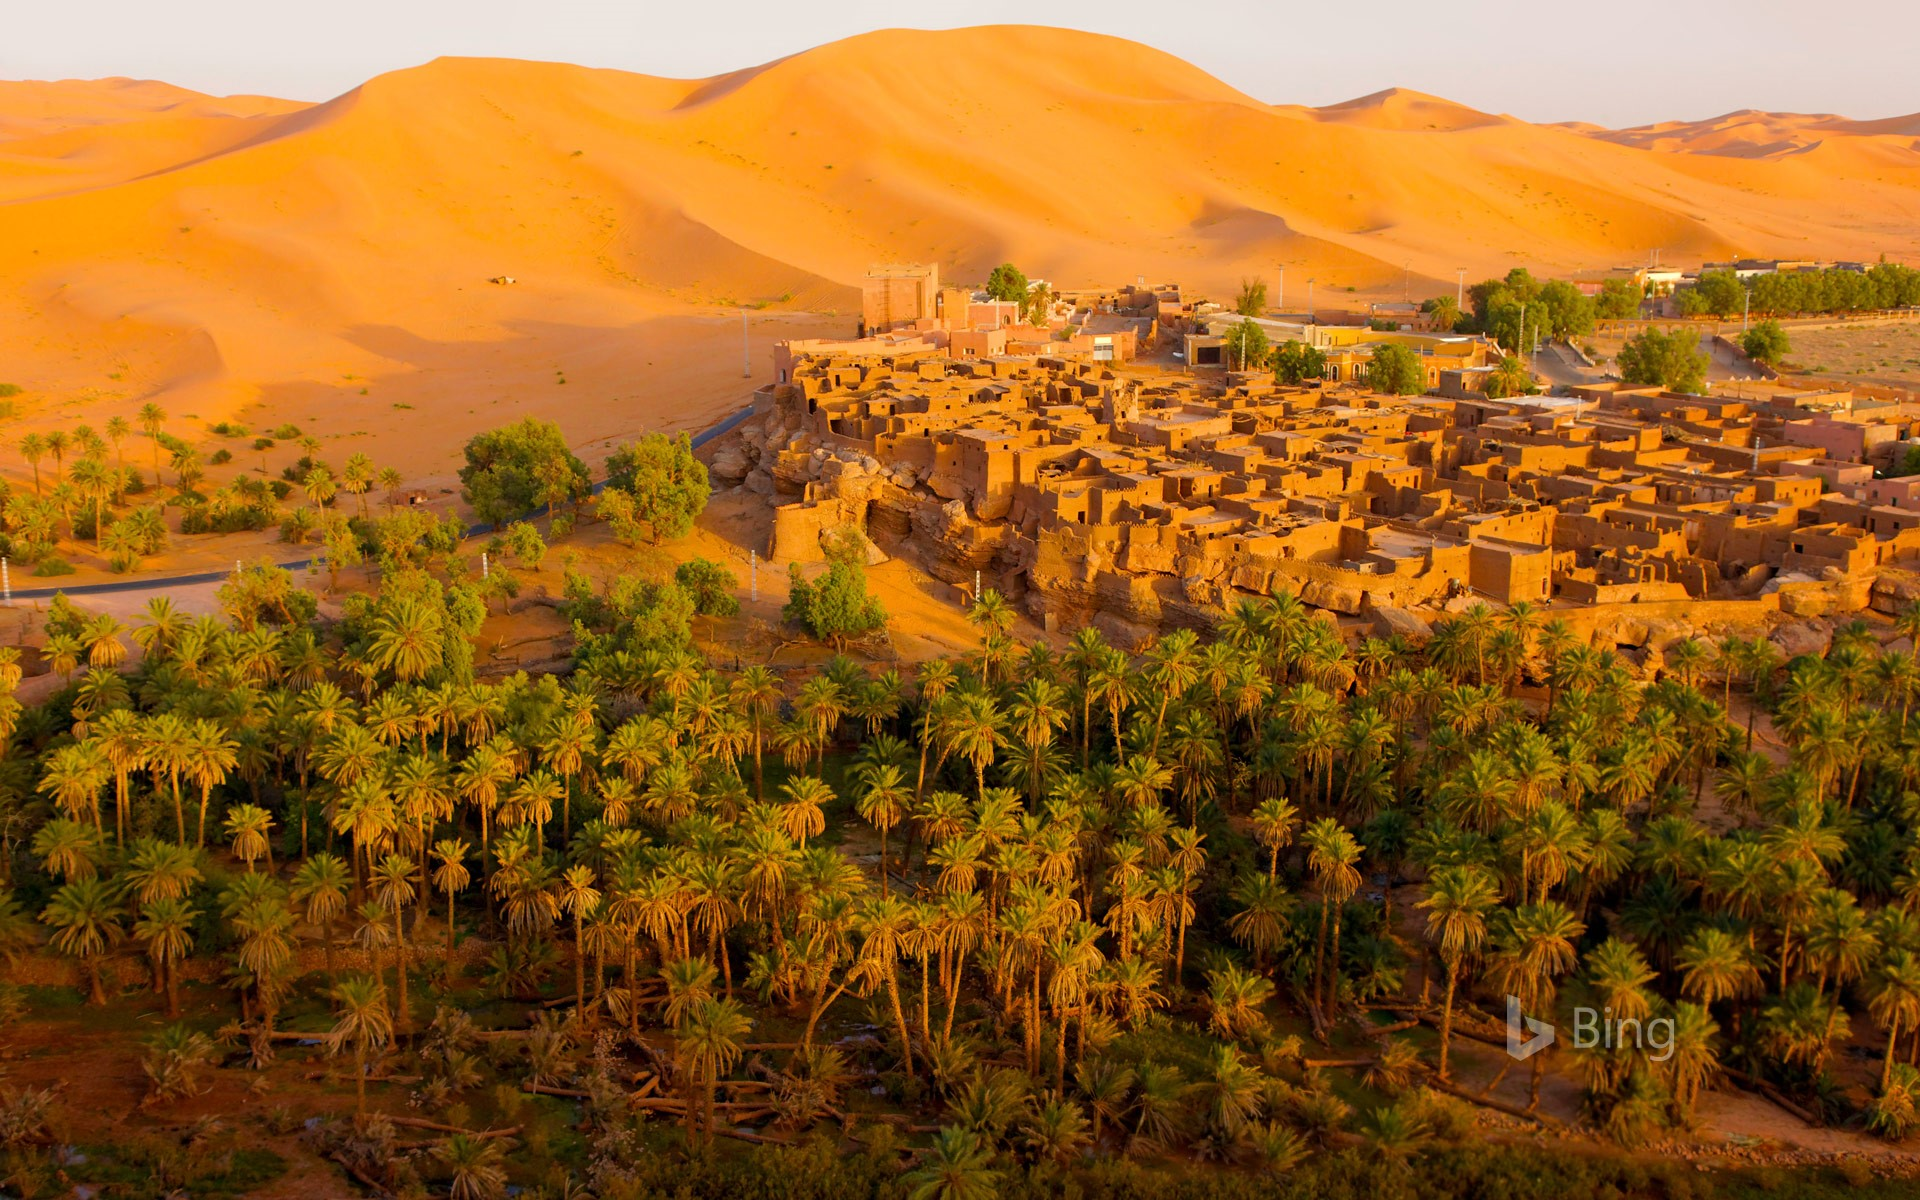 Oasis town of Taghit, Algeria